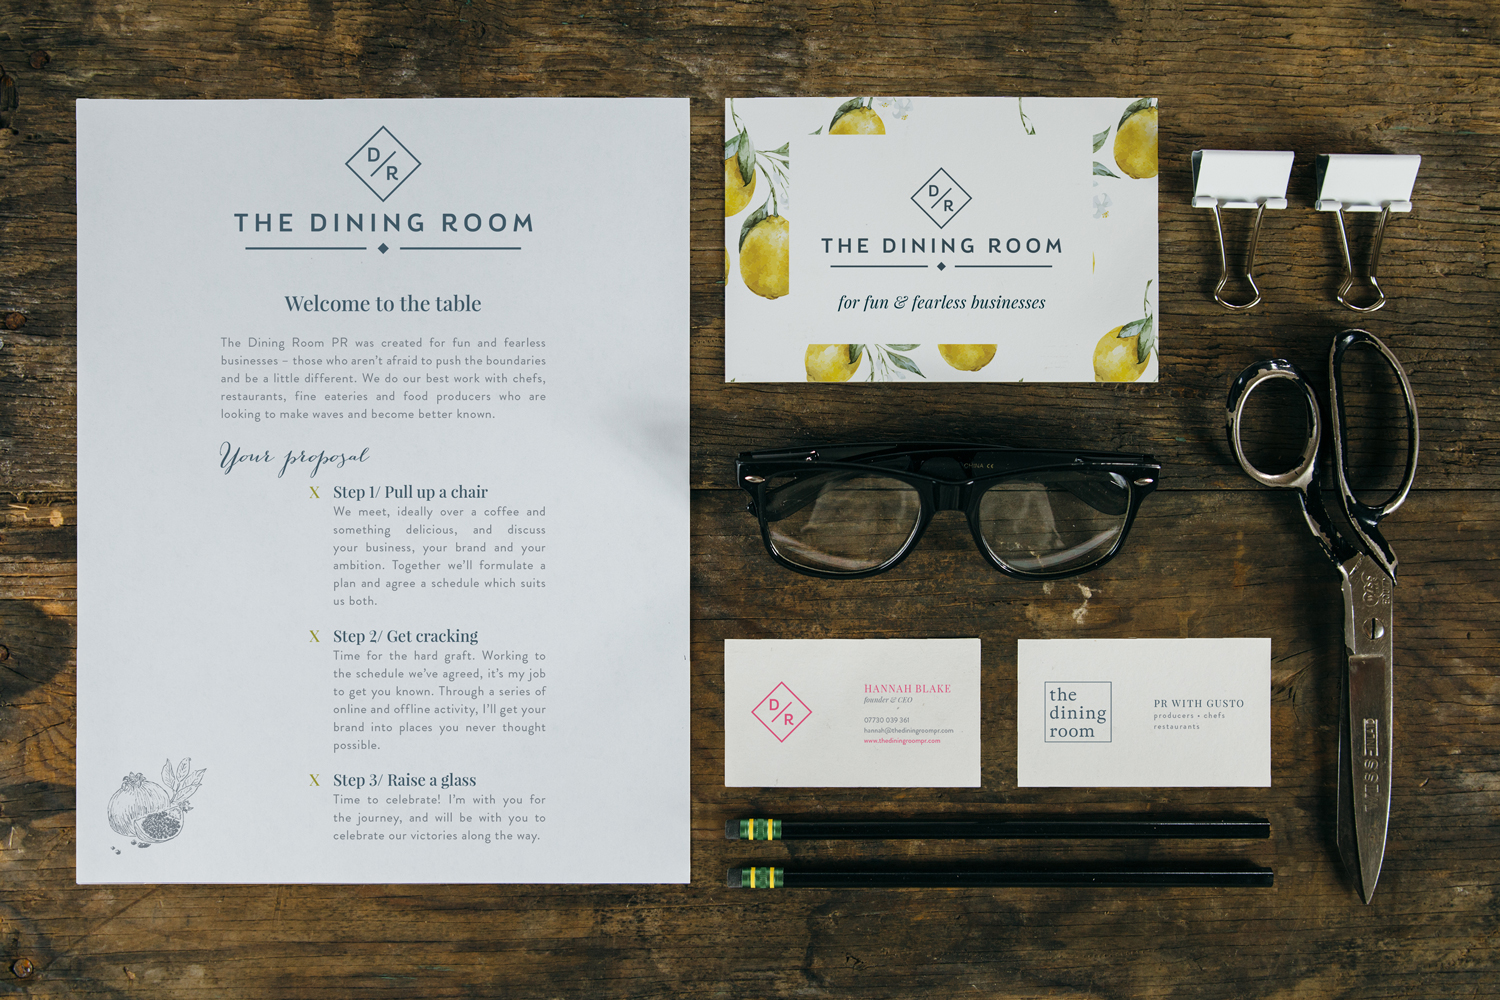 The Dining Room PR, Tunbridge Wells PR Agency, branding and logo design by Ditto Creative, branding agency Kent